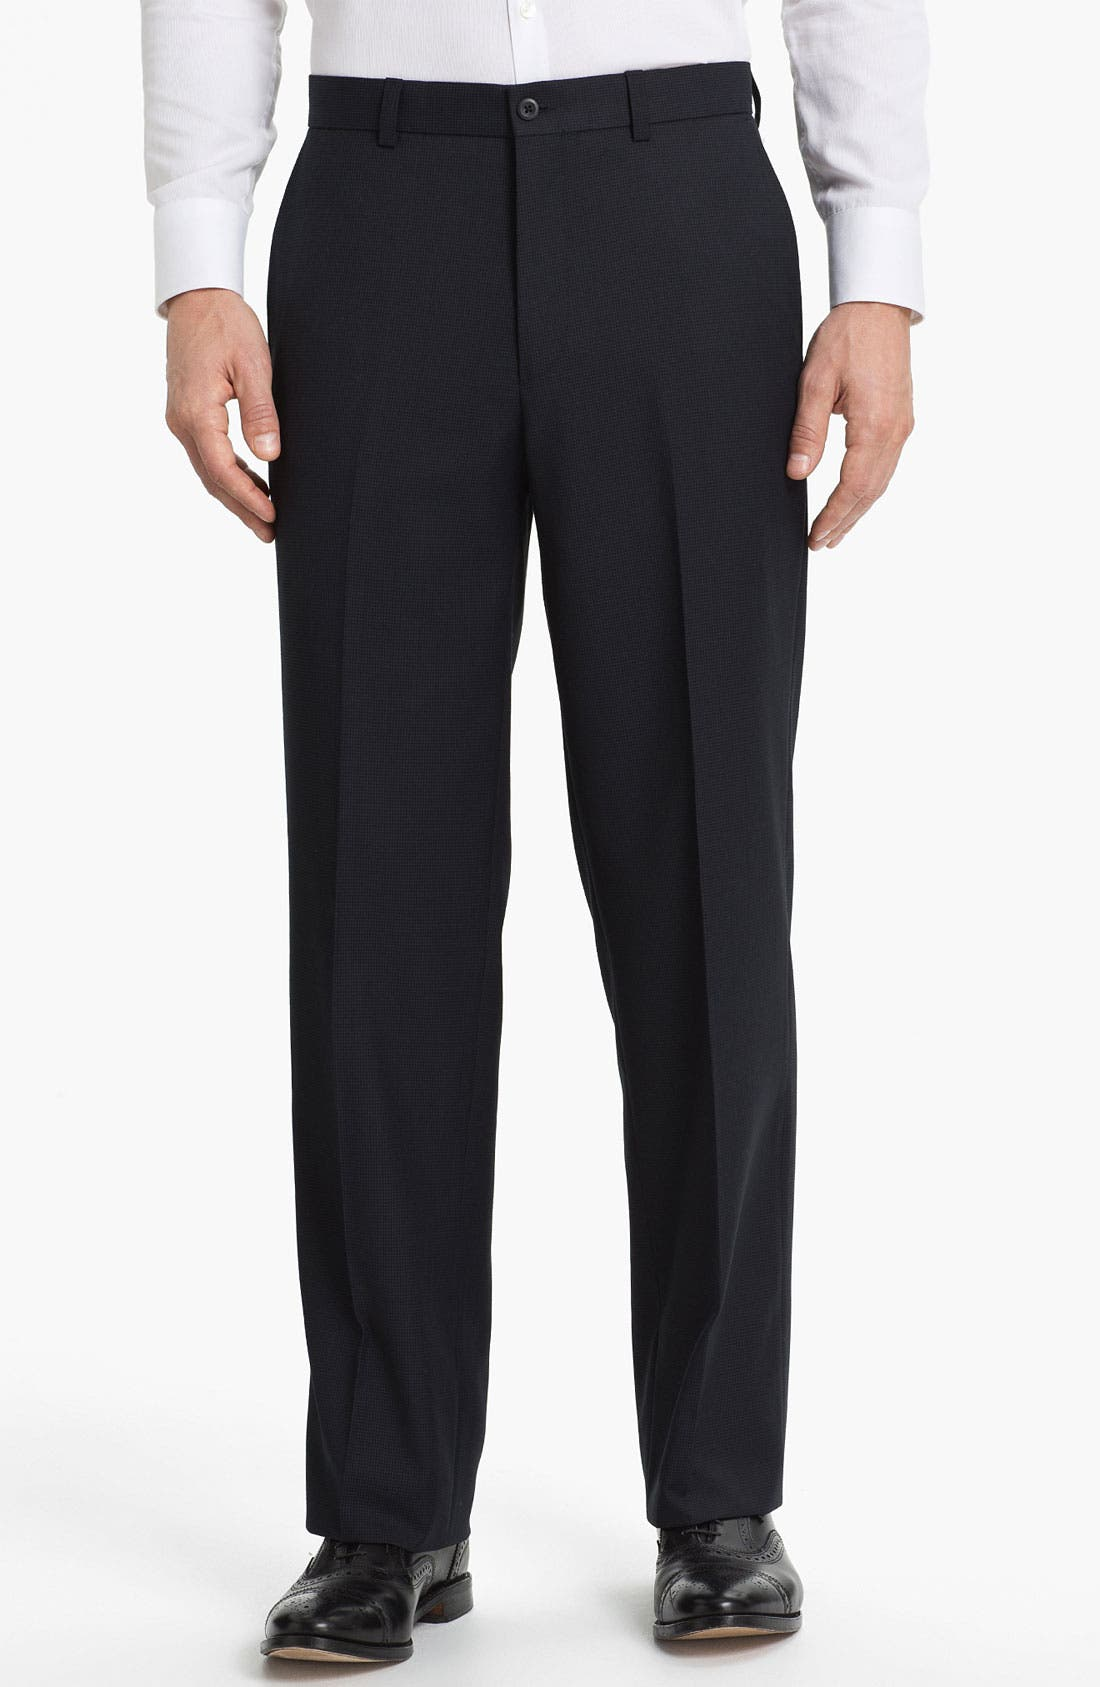 Alternate Image 1 Selected - Linea Naturale 'Fancy' Flat Front Microfiber Trousers